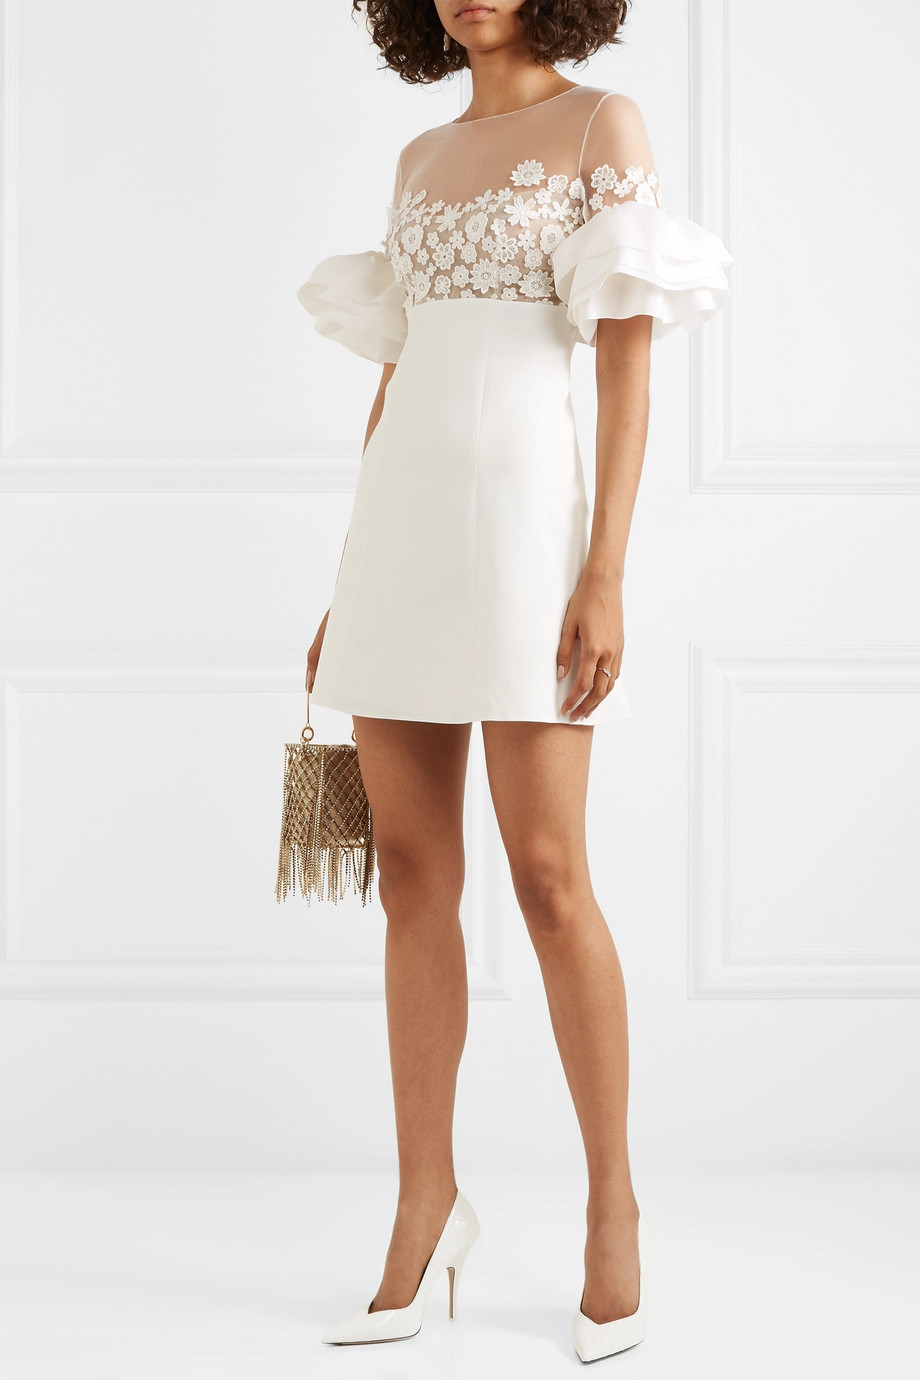 Rime Arodaky Astaire embroidered tulle, crepe and organza mini dress